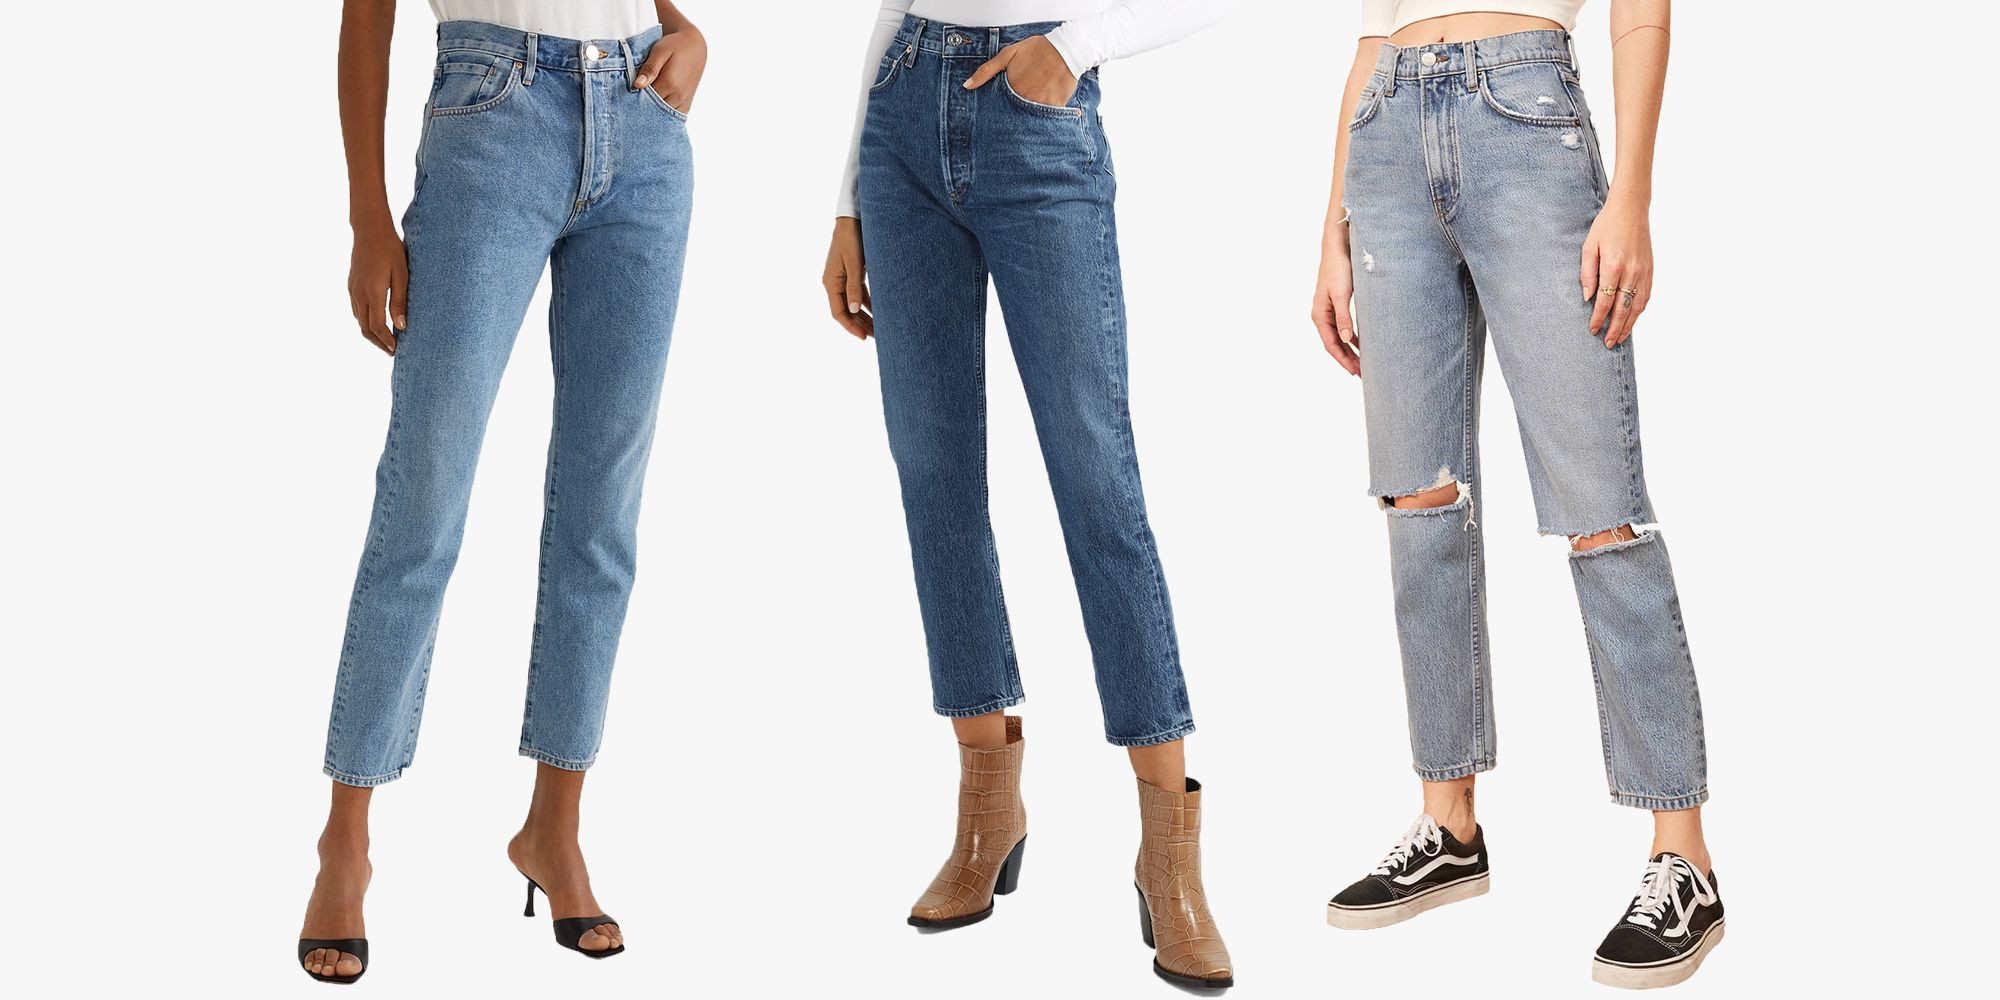 a definitive ranking of the best, fupa defying mom jeans cute jeans jeans #3